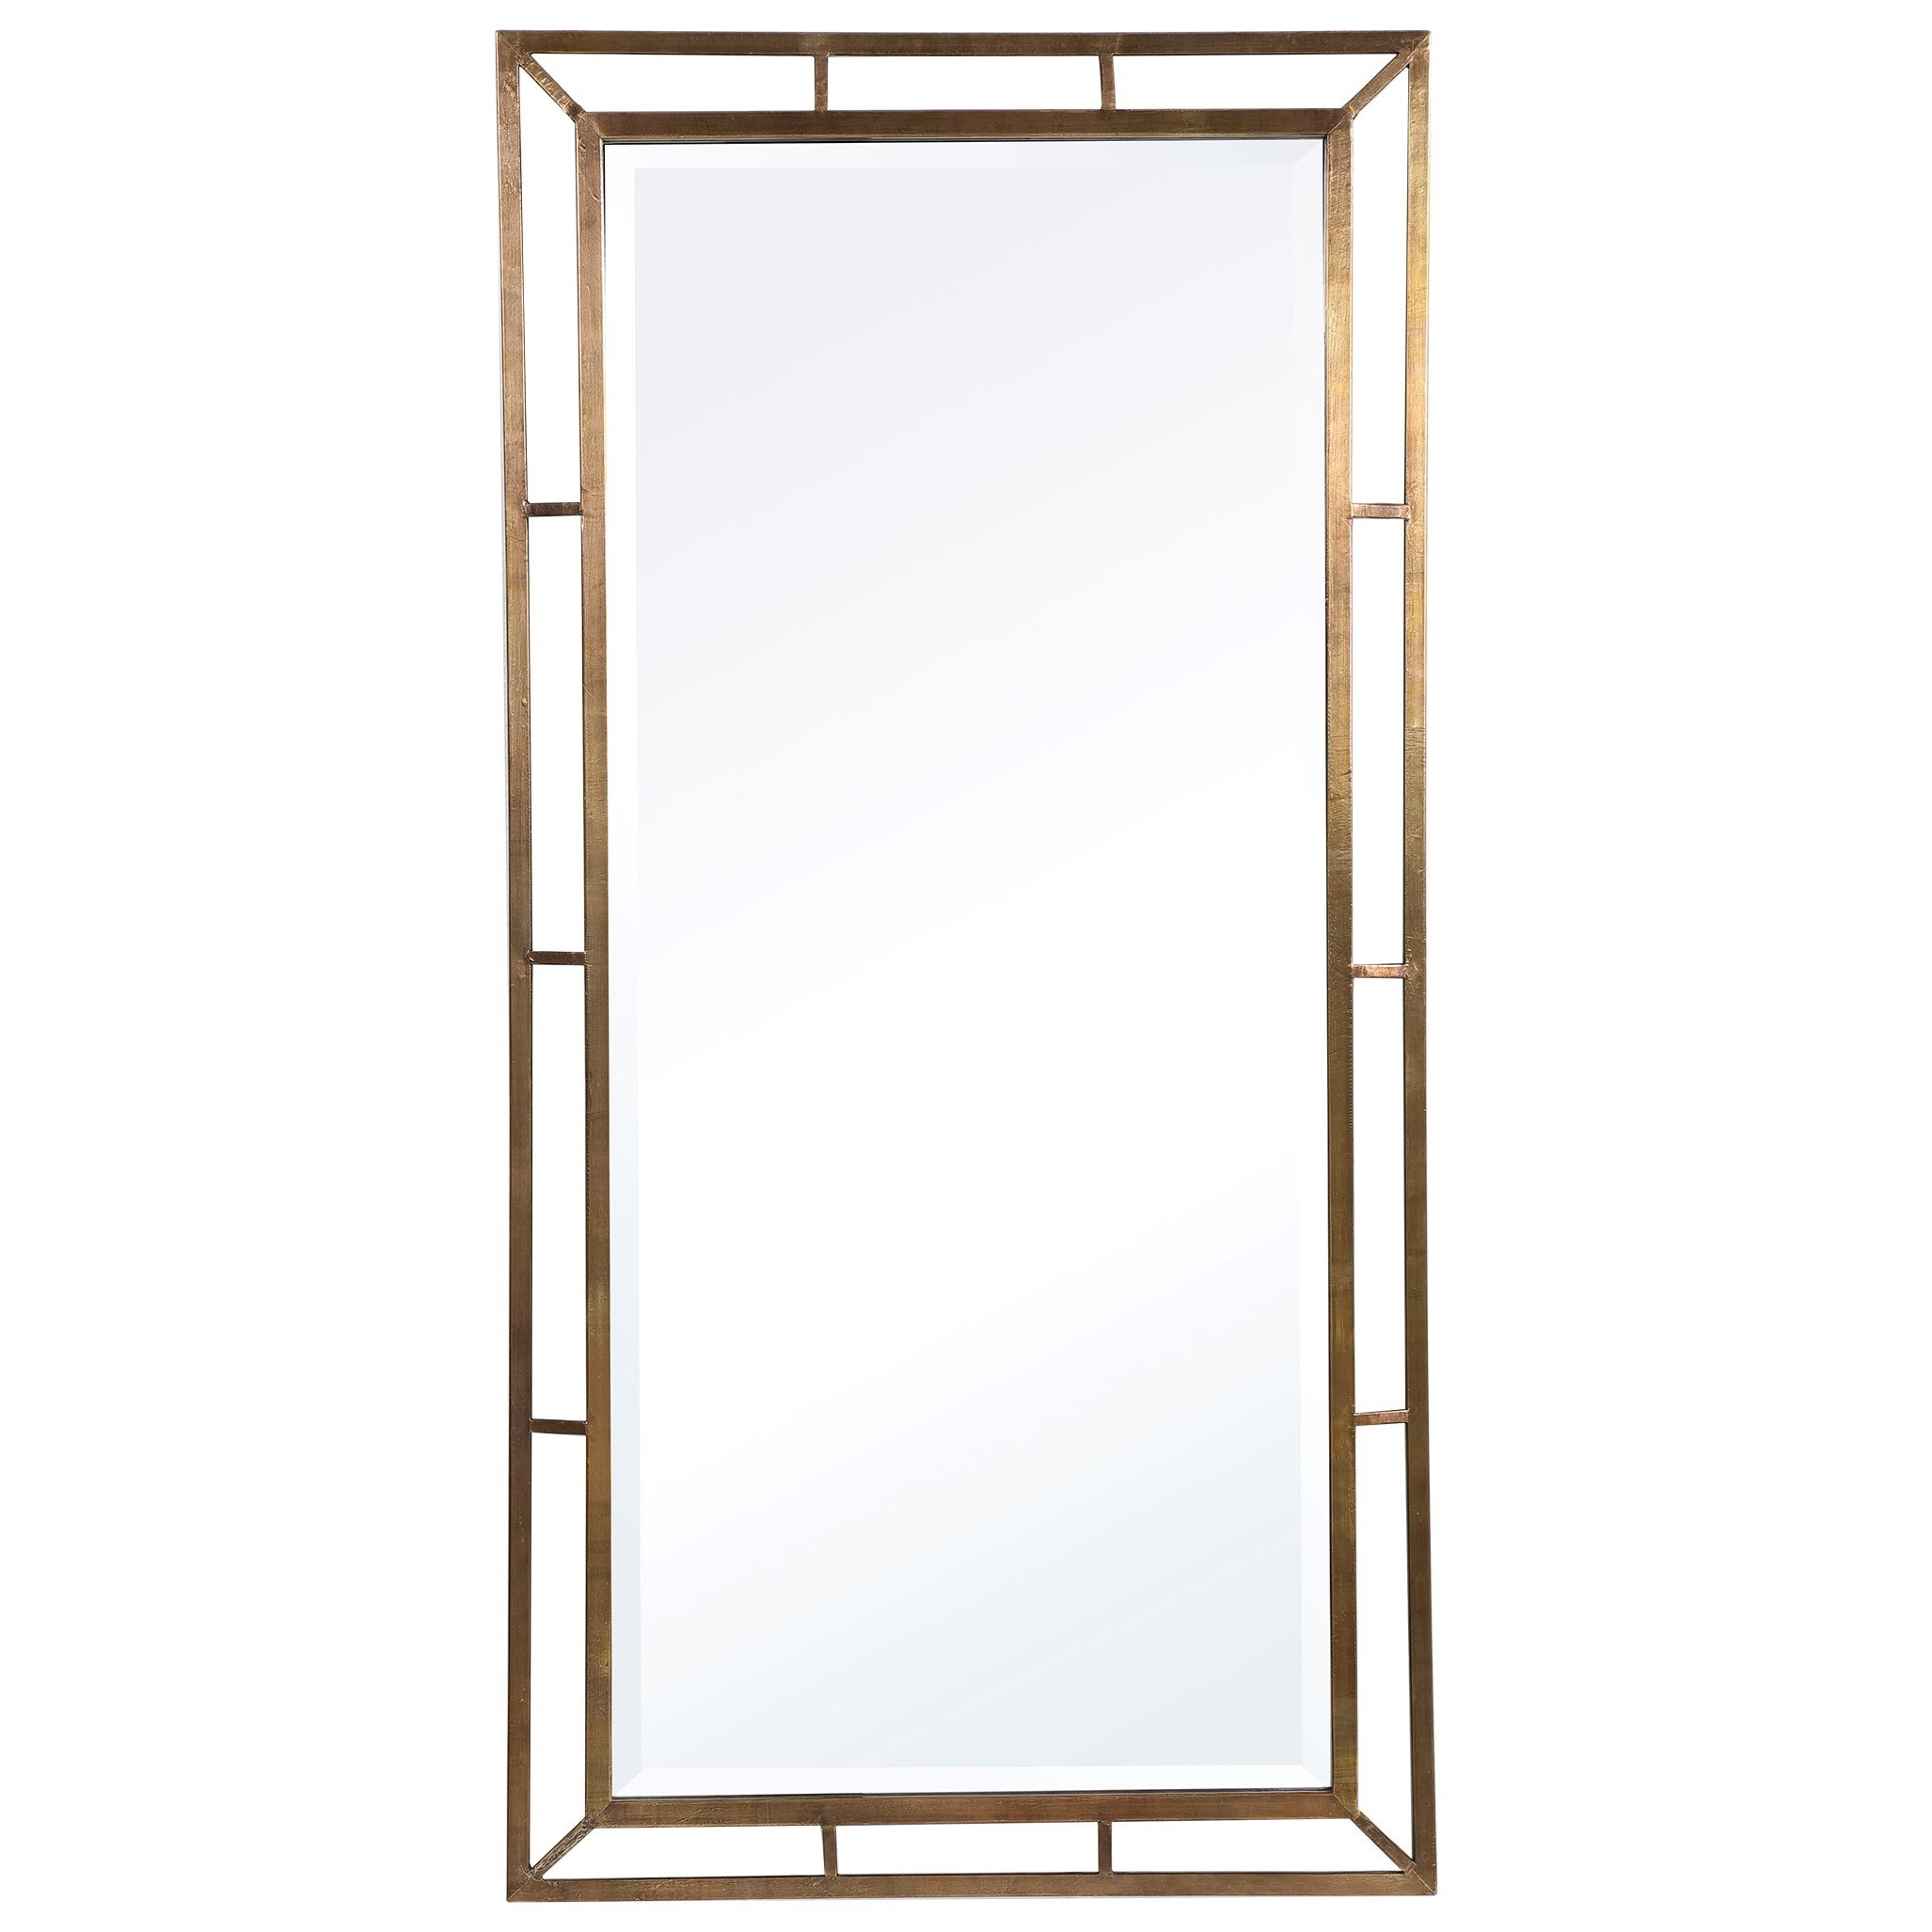 Mirrors Farrow Copper Industrial Mirror by Uttermost at Miller Waldrop Furniture and Decor